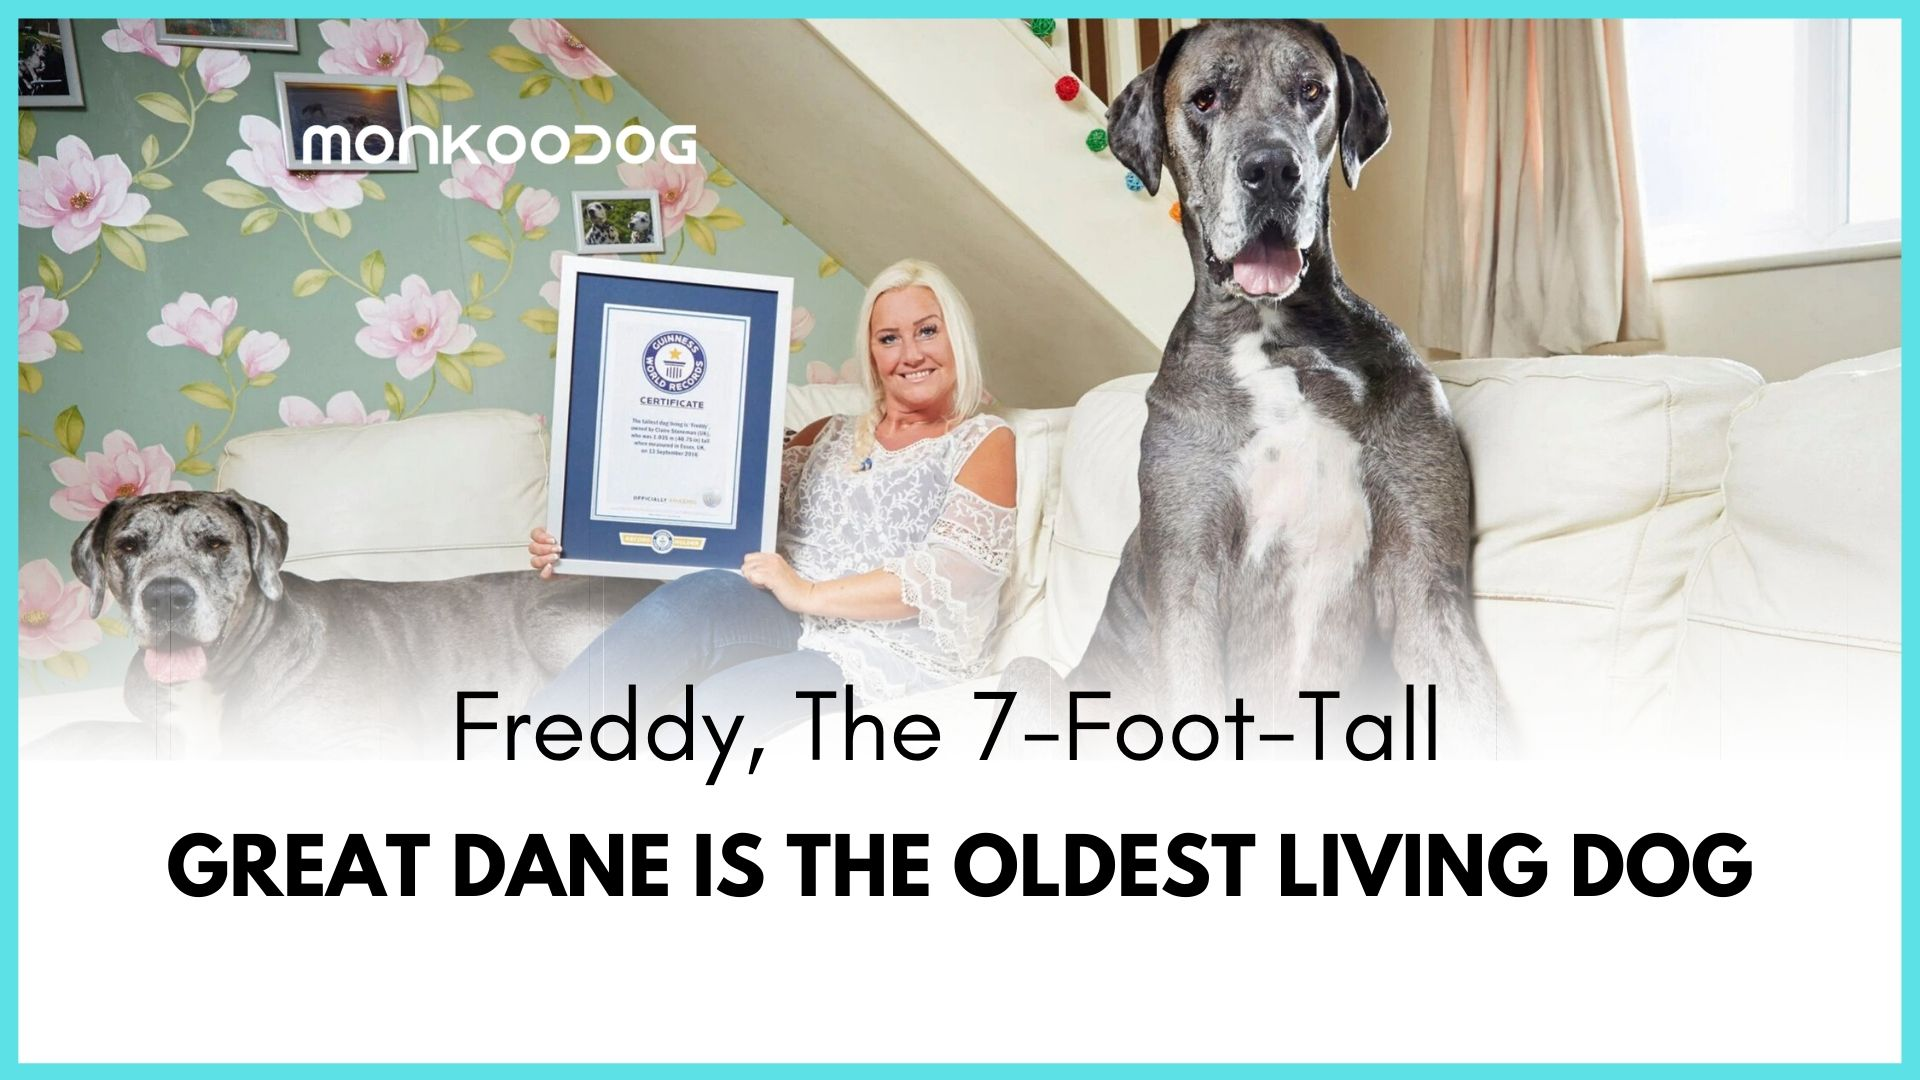 Freddy, the tallest dog is the oldest living dog in the world